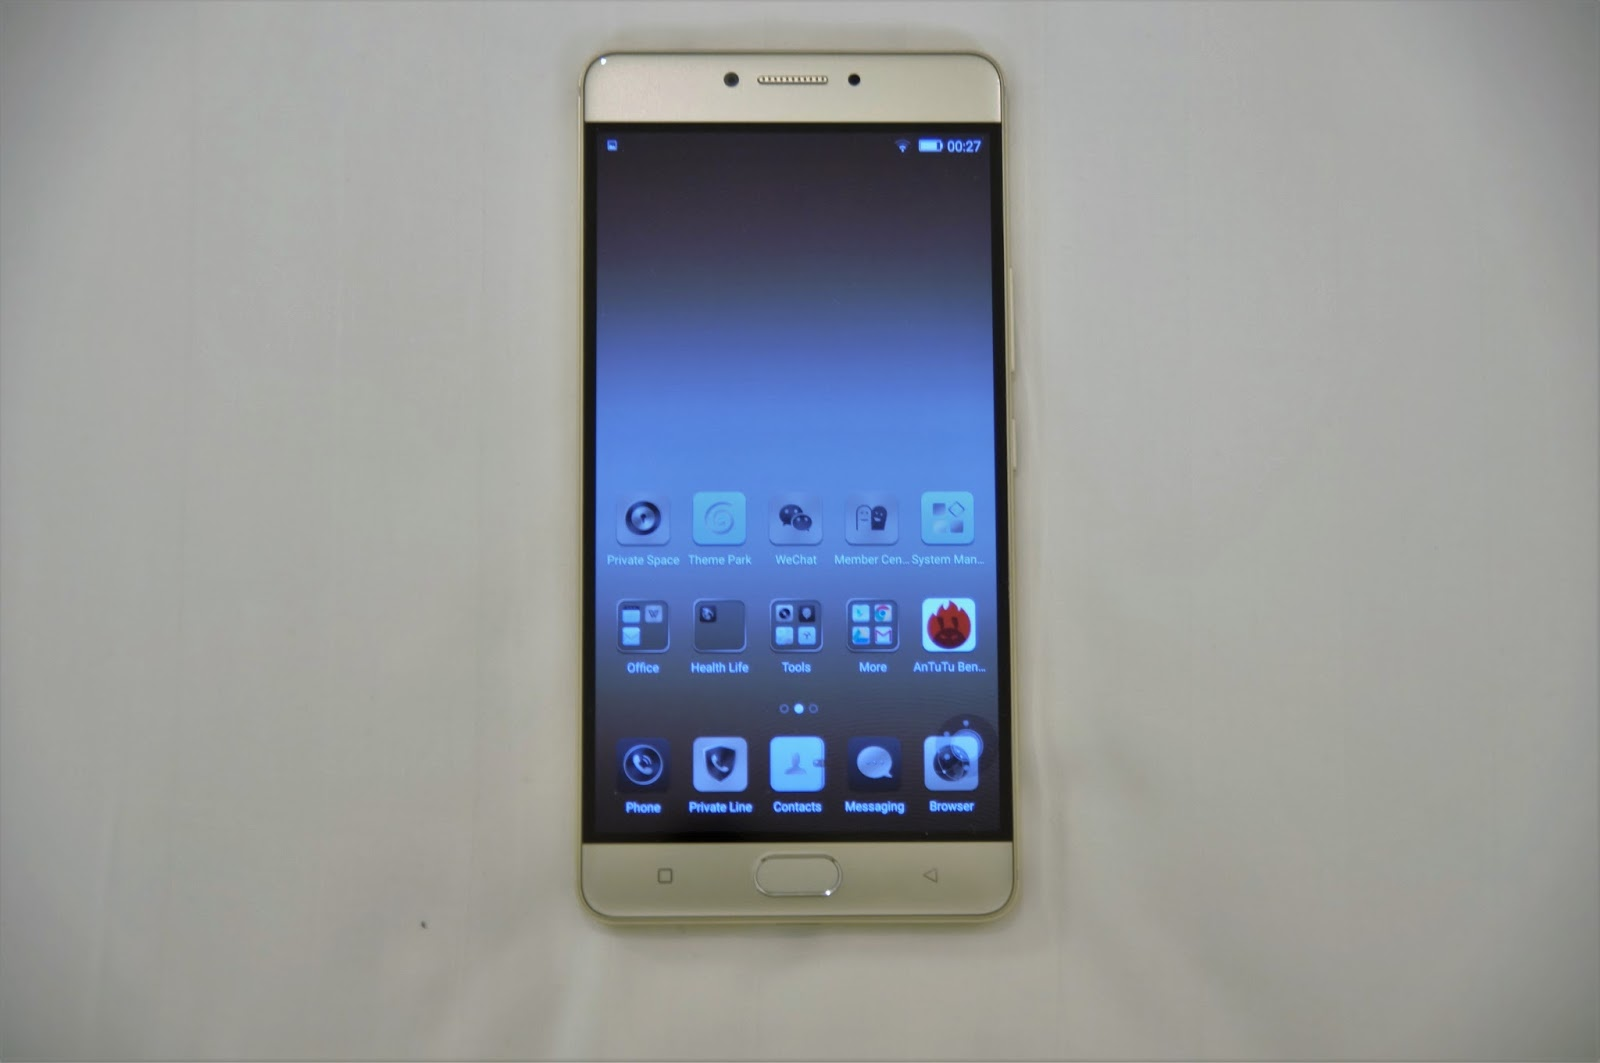 bae1e81e557 Gionee did not scrimp on the design of creating this premium flagship  product for their M series. The M6 is made mainly from metal